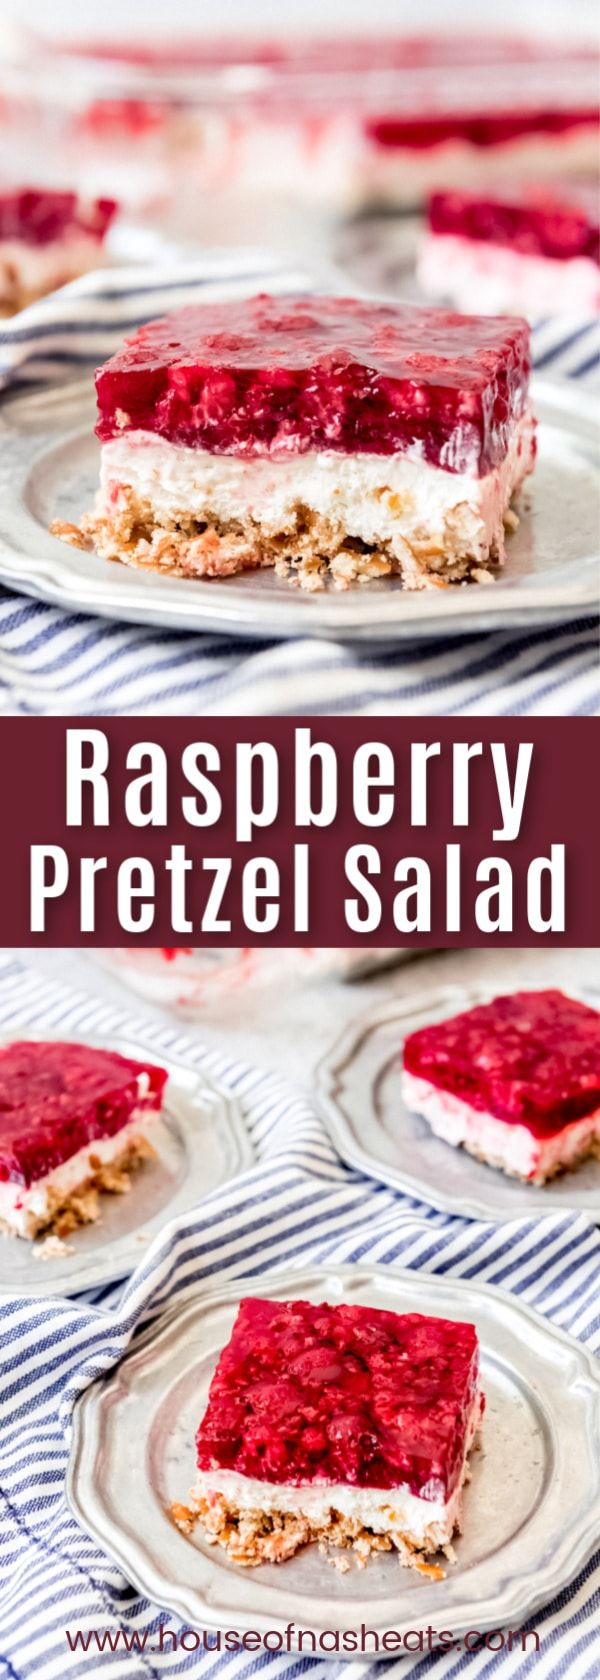 Raspberry Pretzel Salad Everybody loves this irresistible Raspberry Pretzel Salad recipe with it's salty-sweet combo of crunchy pretzel crust, creamy cool whip and cream cheese filling, and sweet-tart raspberry Jello top!  It's a summertime and holiday favorite!